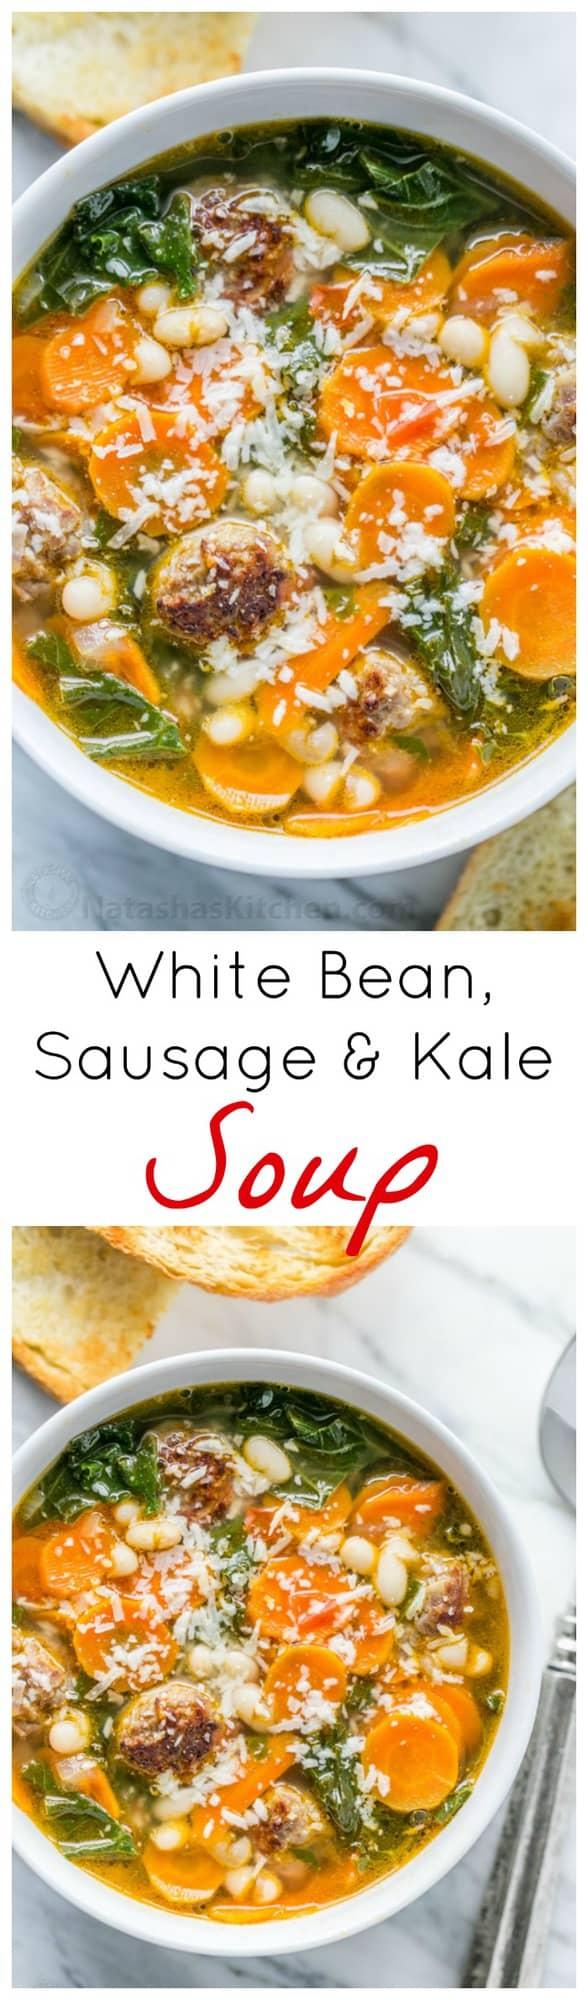 This White Bean, Sausage and Kale soup is wholesome comfort food. The sausages make fuss-free meatballs and infuse the soup with great flavor | natashaskitchen.com